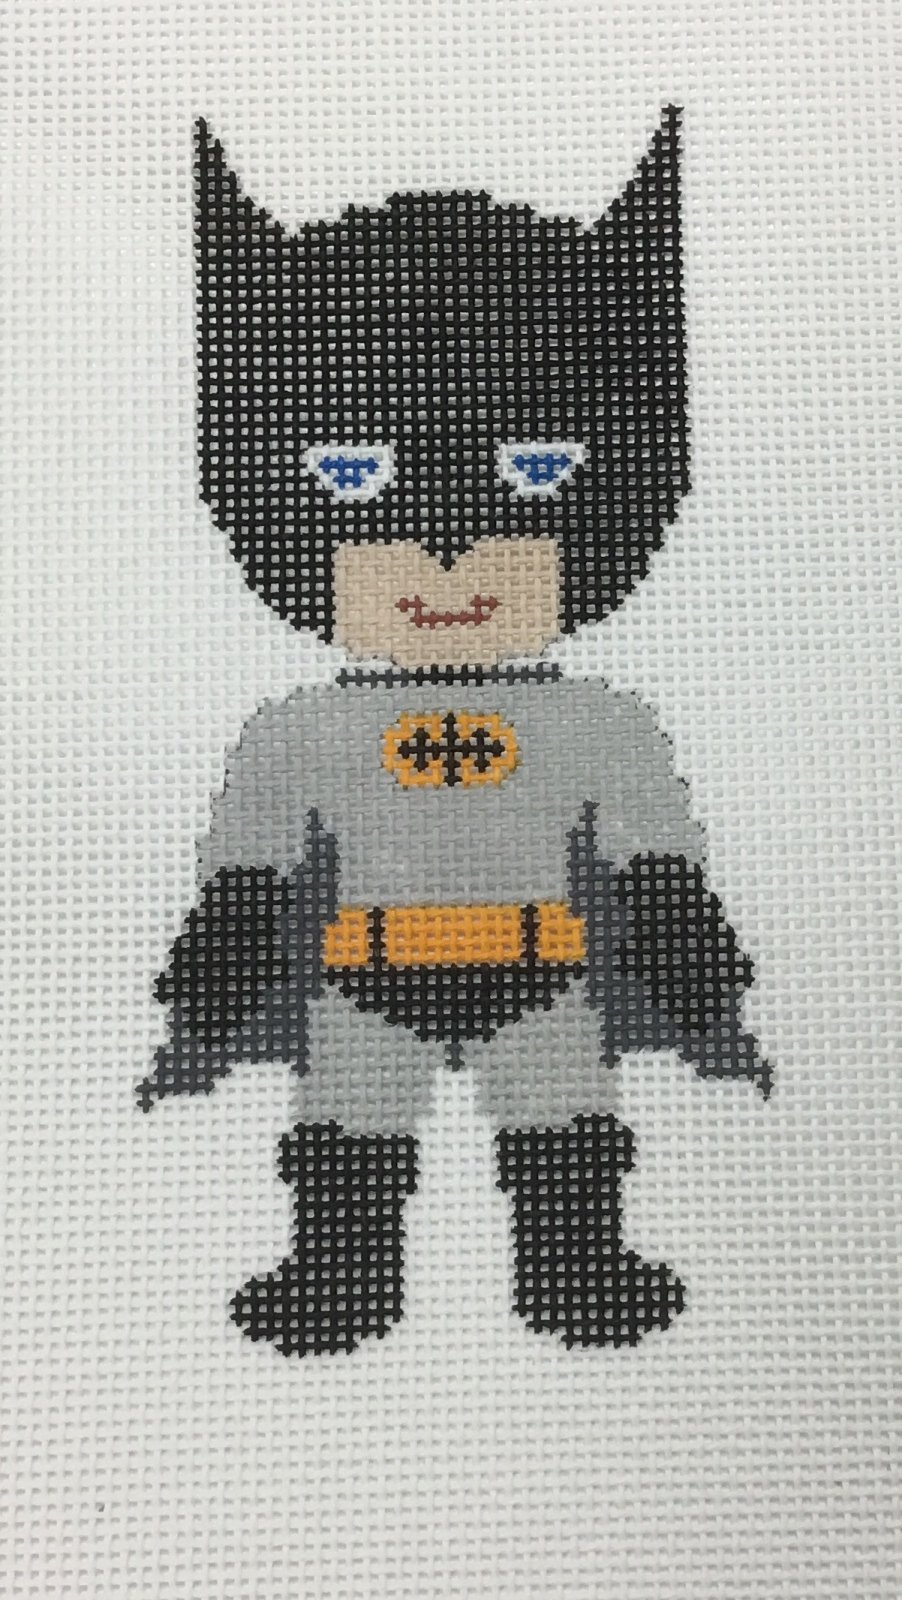 Batman,18 ct.,2 1/2x5